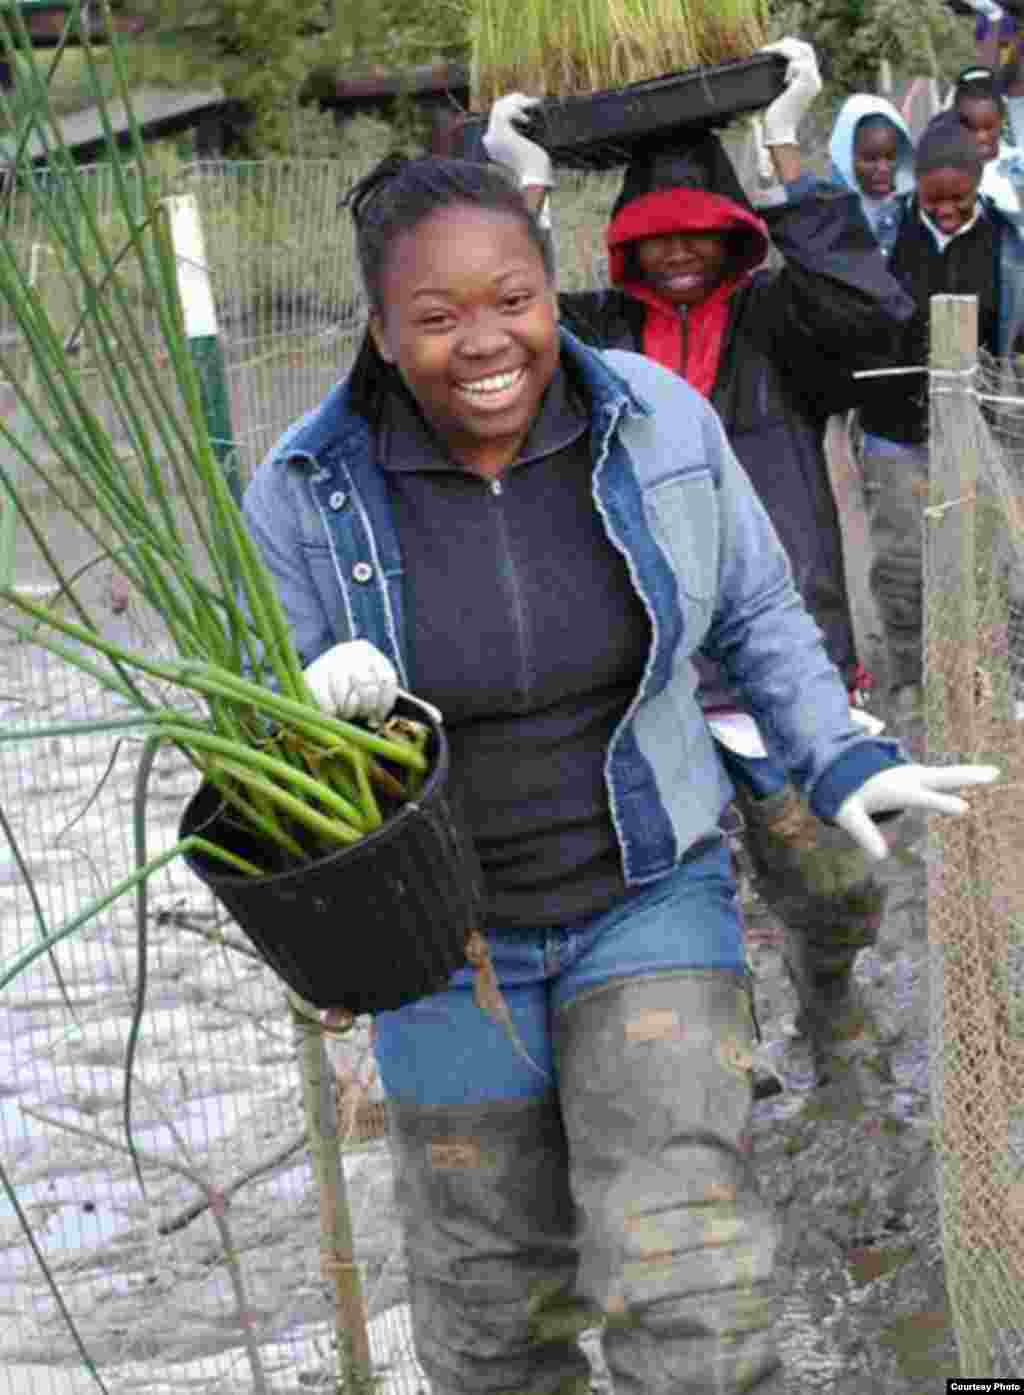 Volunteers do service projects to rebuild the wetland in the Anacostia River. (Anacostia Watershed Society)